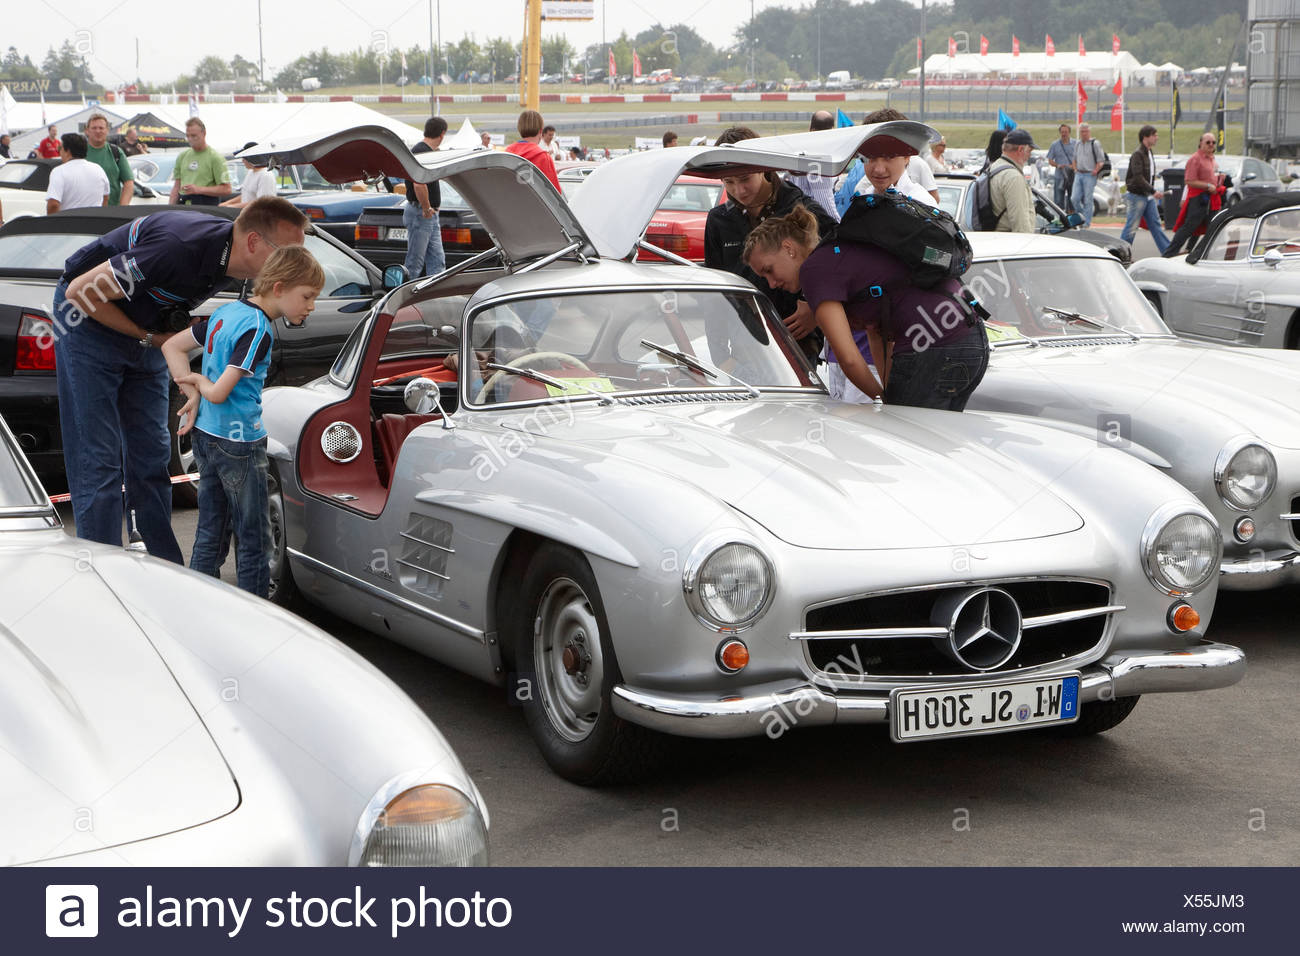 mercedes benz 300sl stock photos mercedes benz 300sl stock images alamy. Black Bedroom Furniture Sets. Home Design Ideas